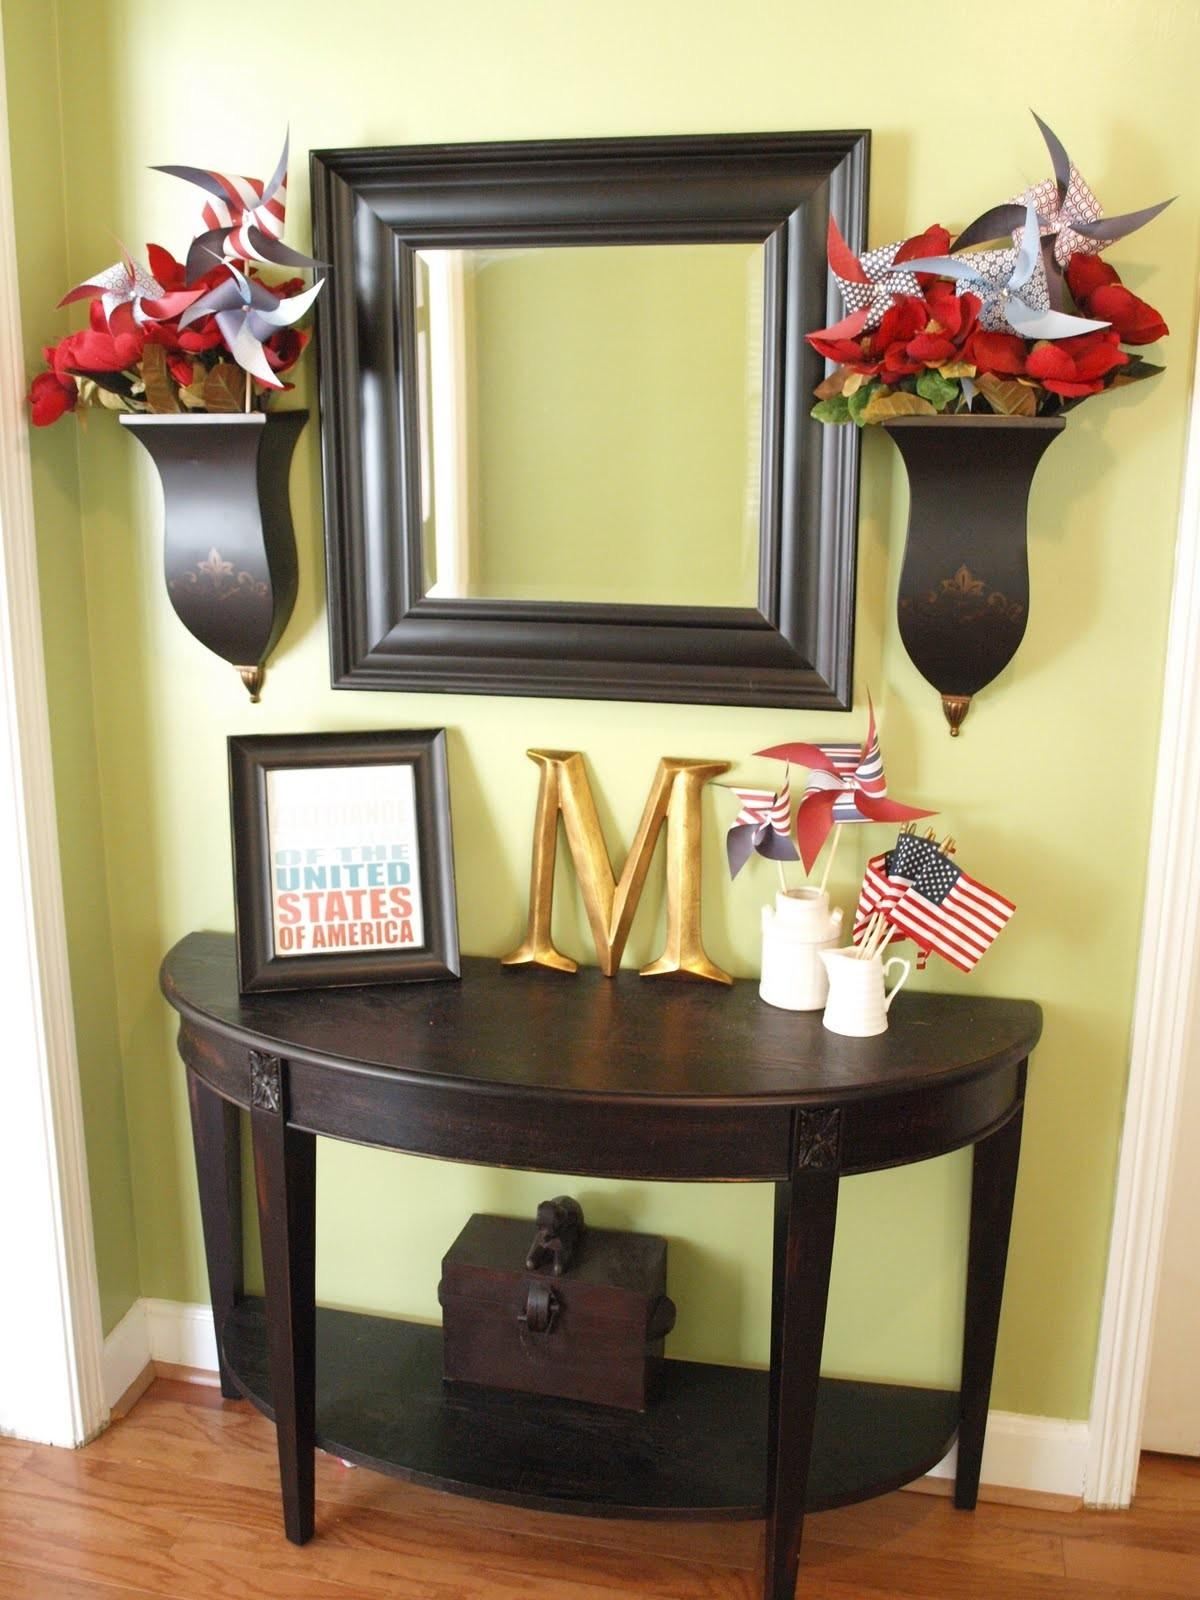 Stylish Square Wall Mounted Mirror Frames Flower